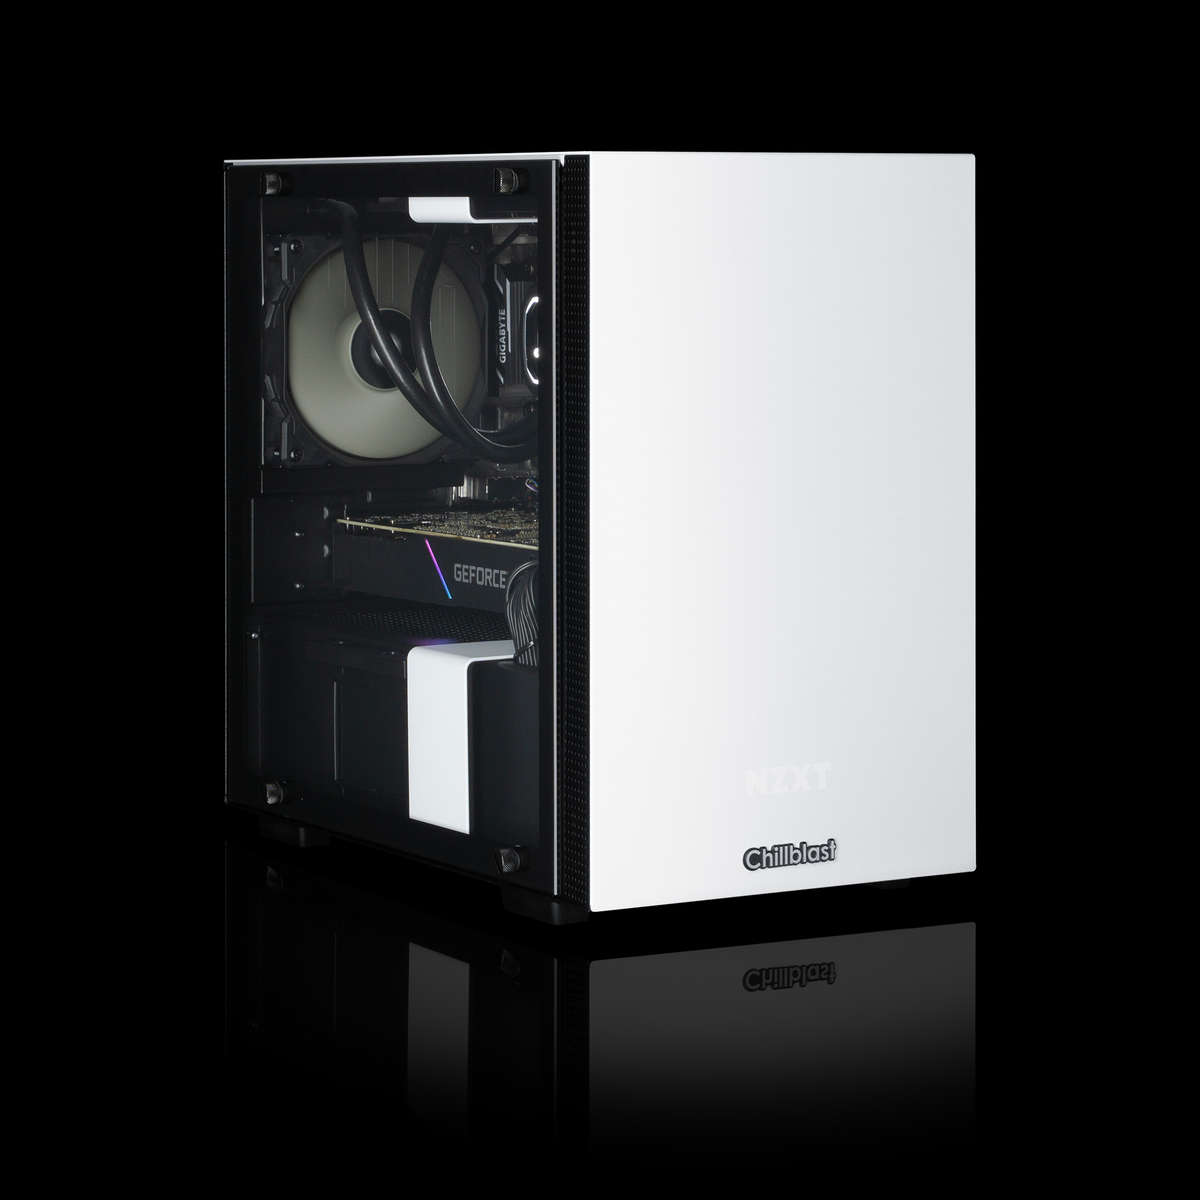 Image of the pre-built Chillblast Ion Advanced Gaming PC against a dark background.